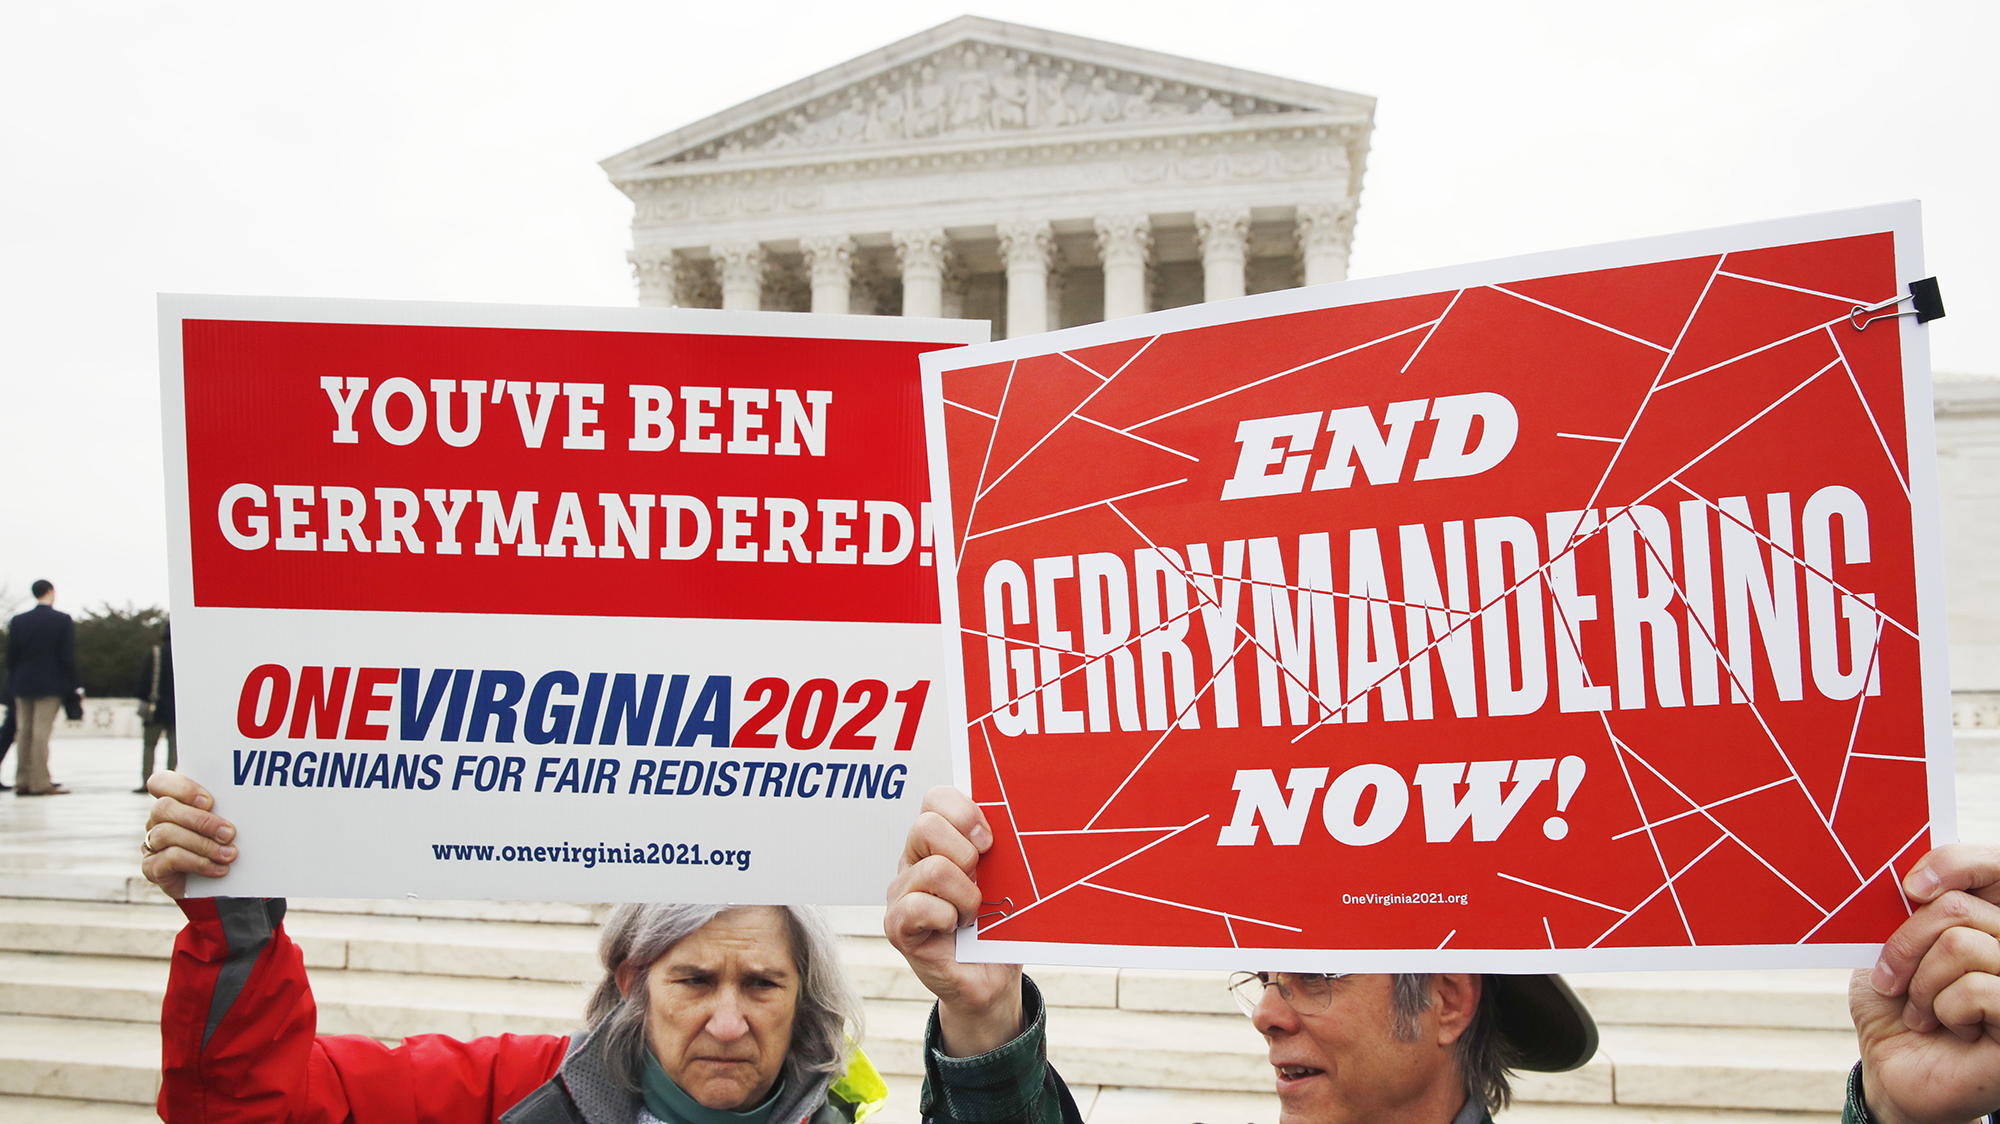 High court decision extends legal battle over gerrymandering